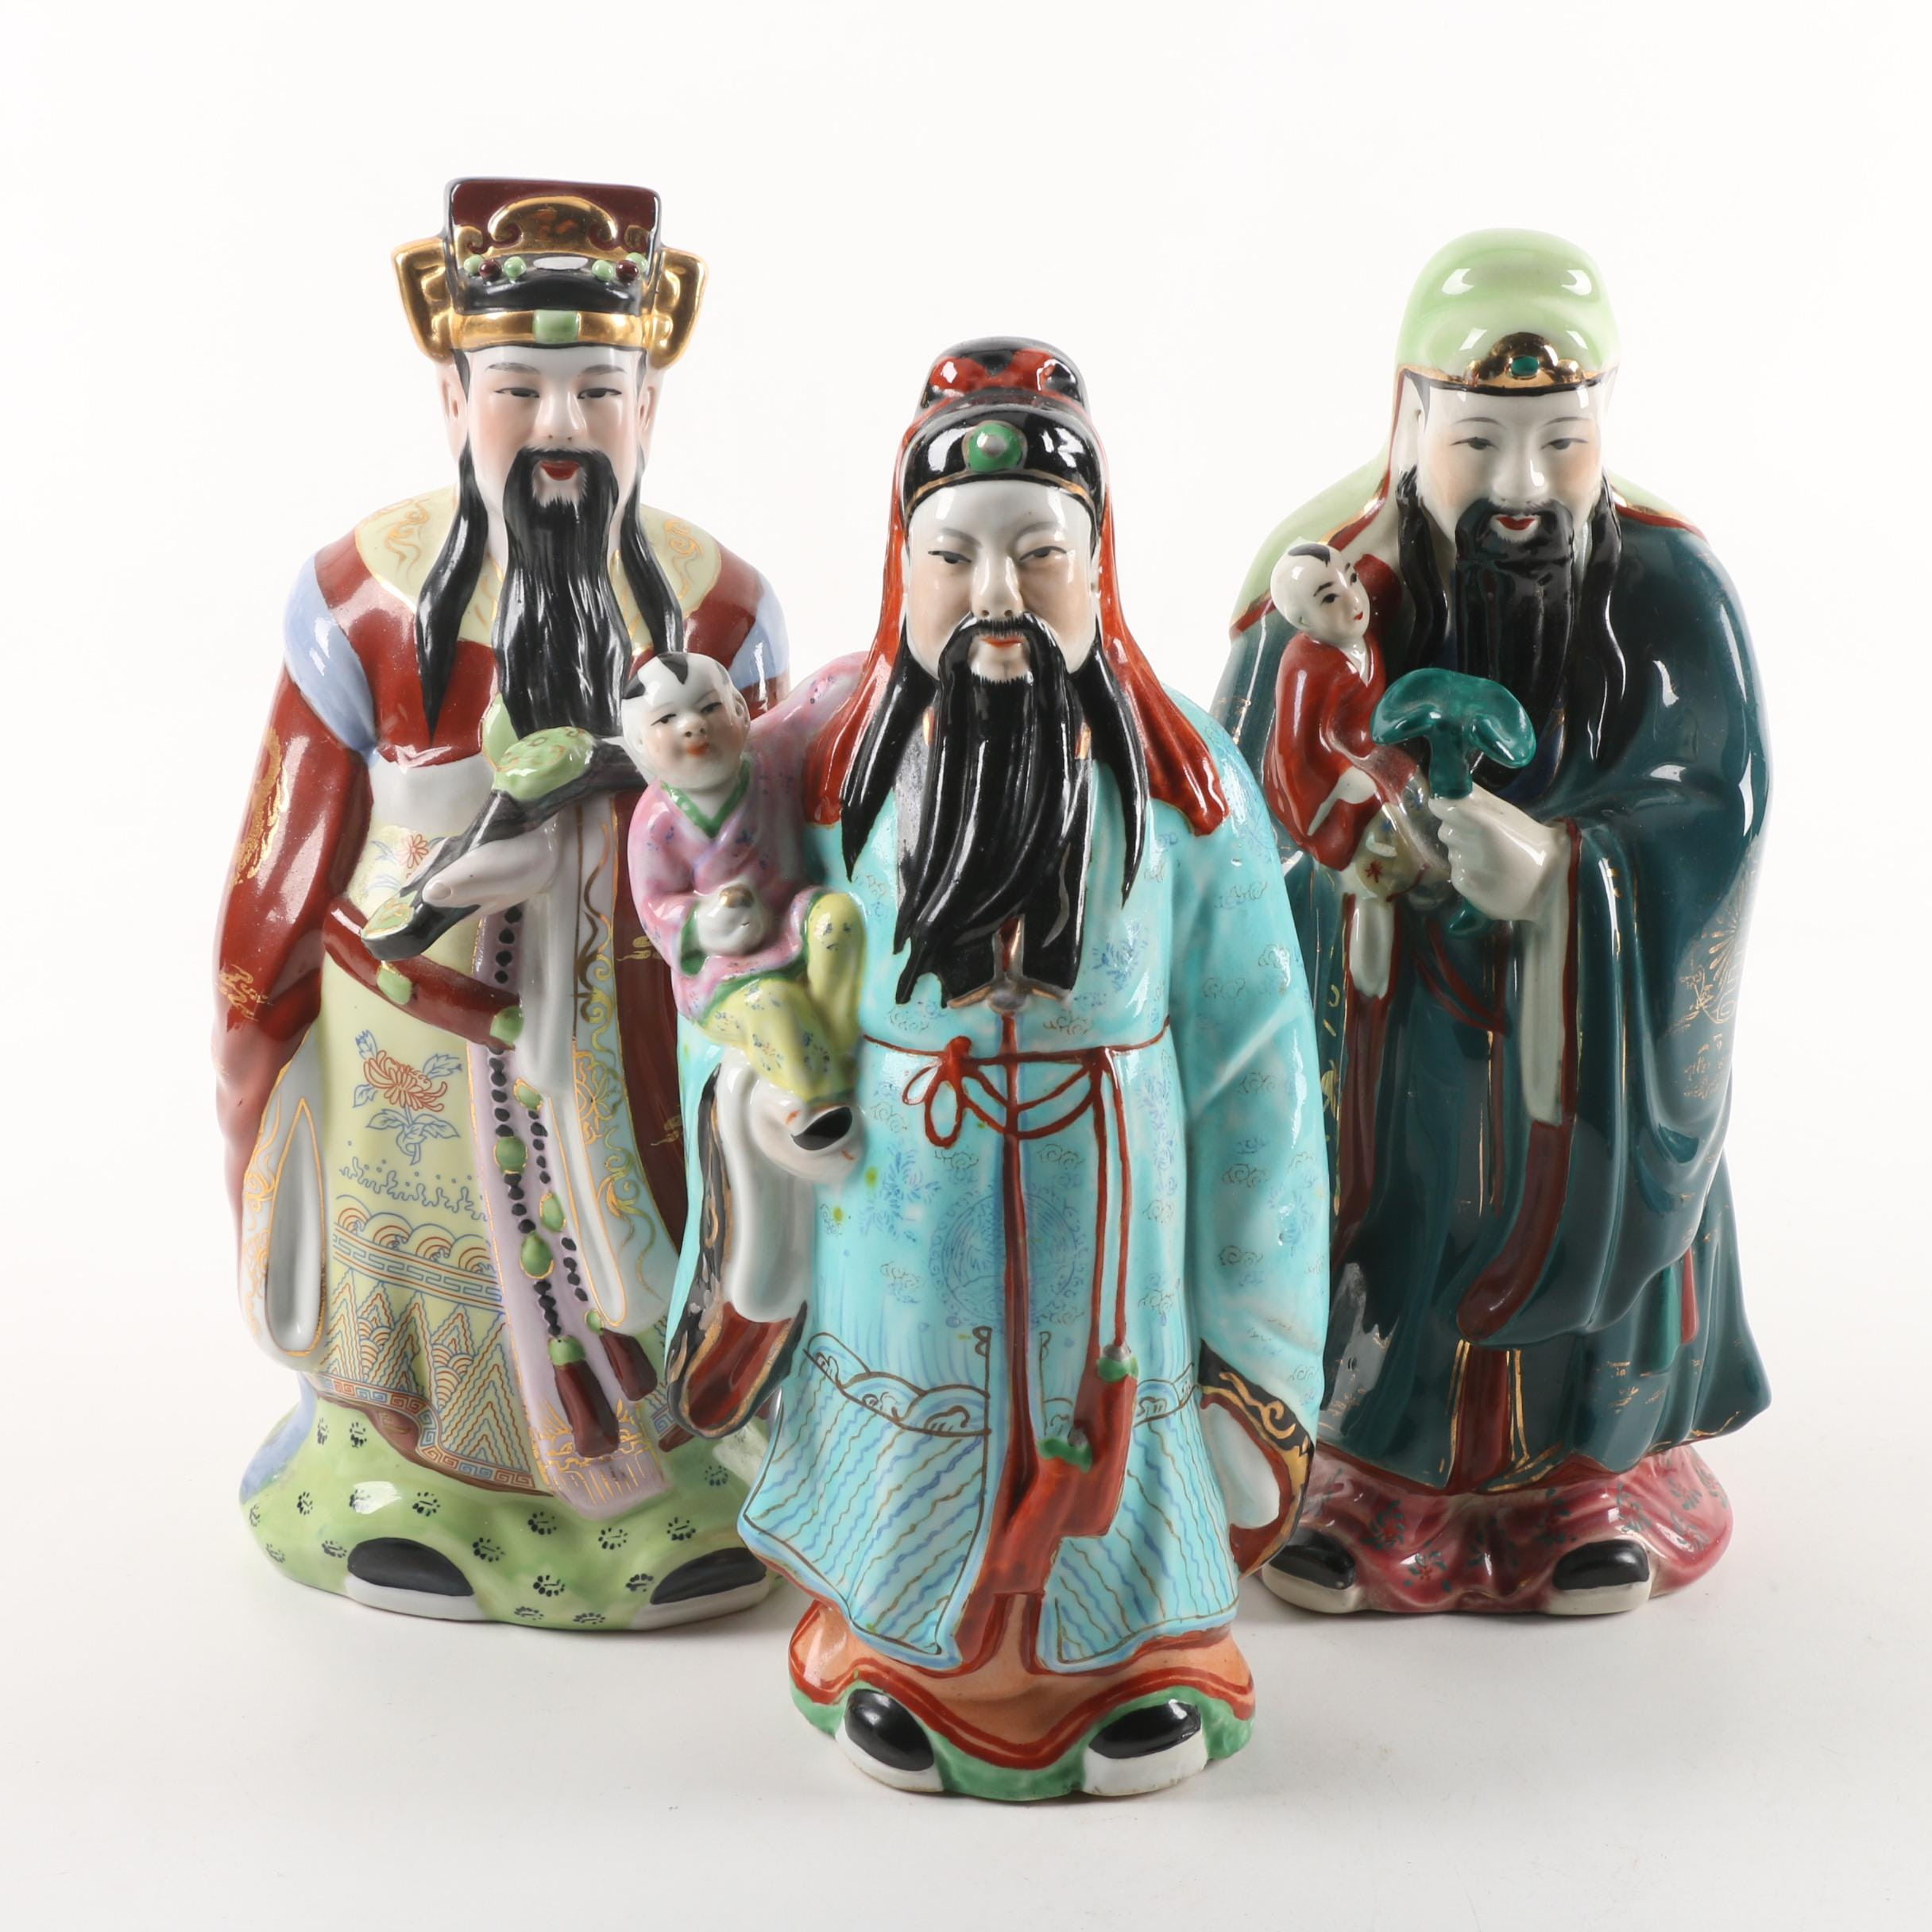 Chinese Sanxing Deities Ceramic Figurines